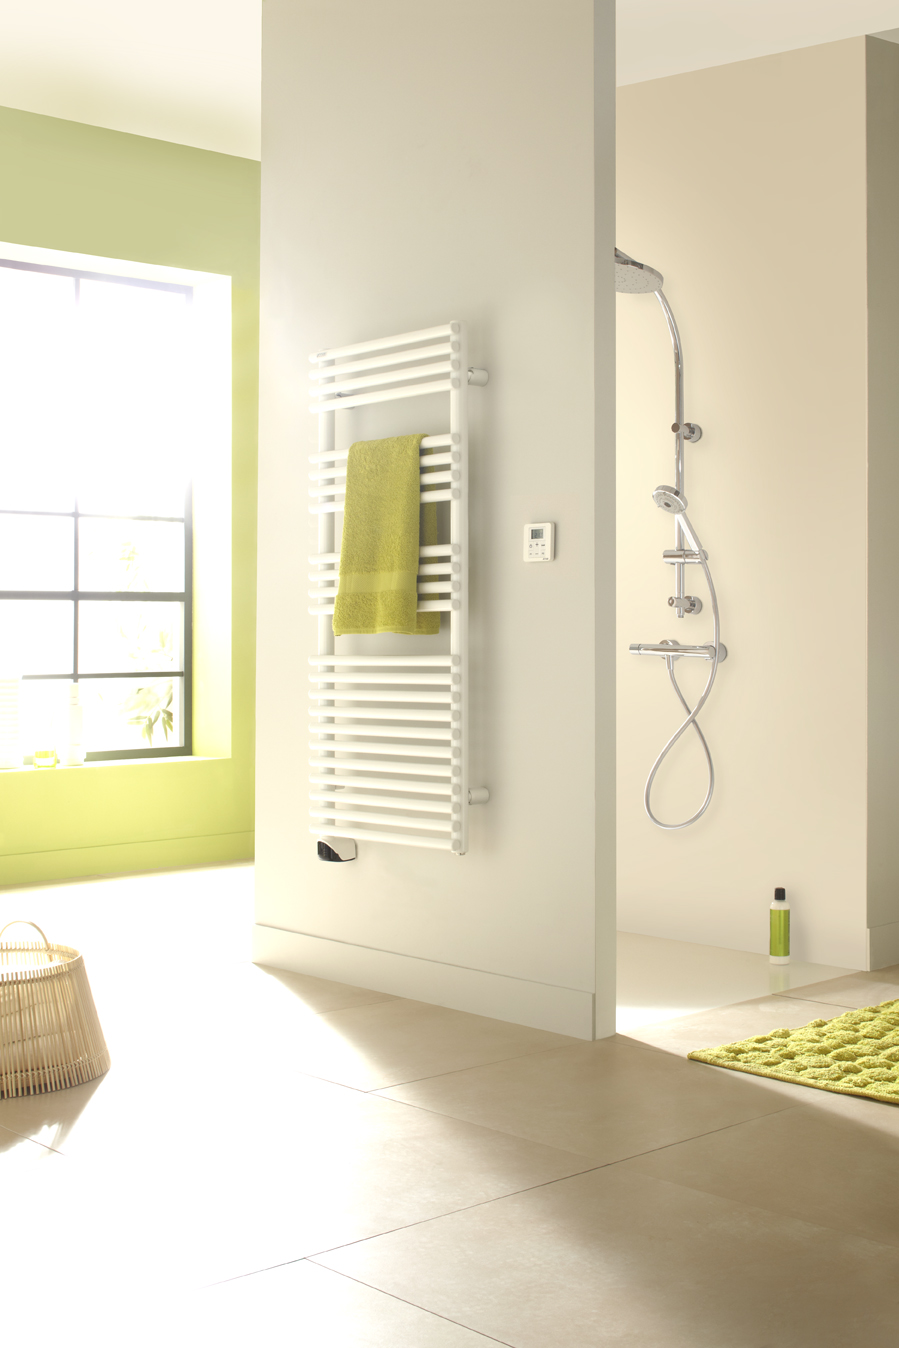 radiateur s che serviette ou design que choisir pour la salle de bain. Black Bedroom Furniture Sets. Home Design Ideas